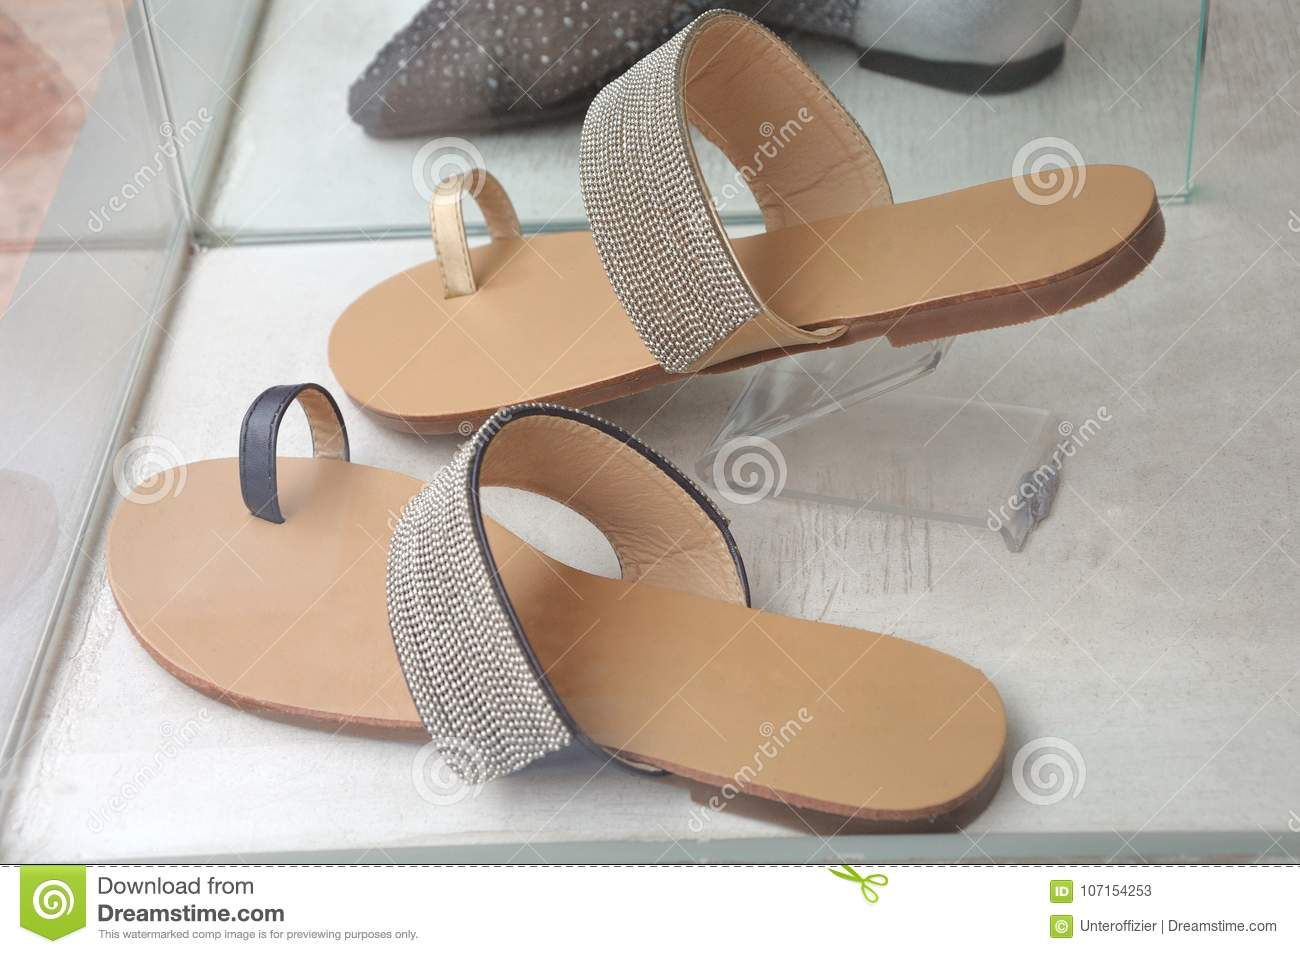 A Pair Of Open Toe Sandals With Big Toe